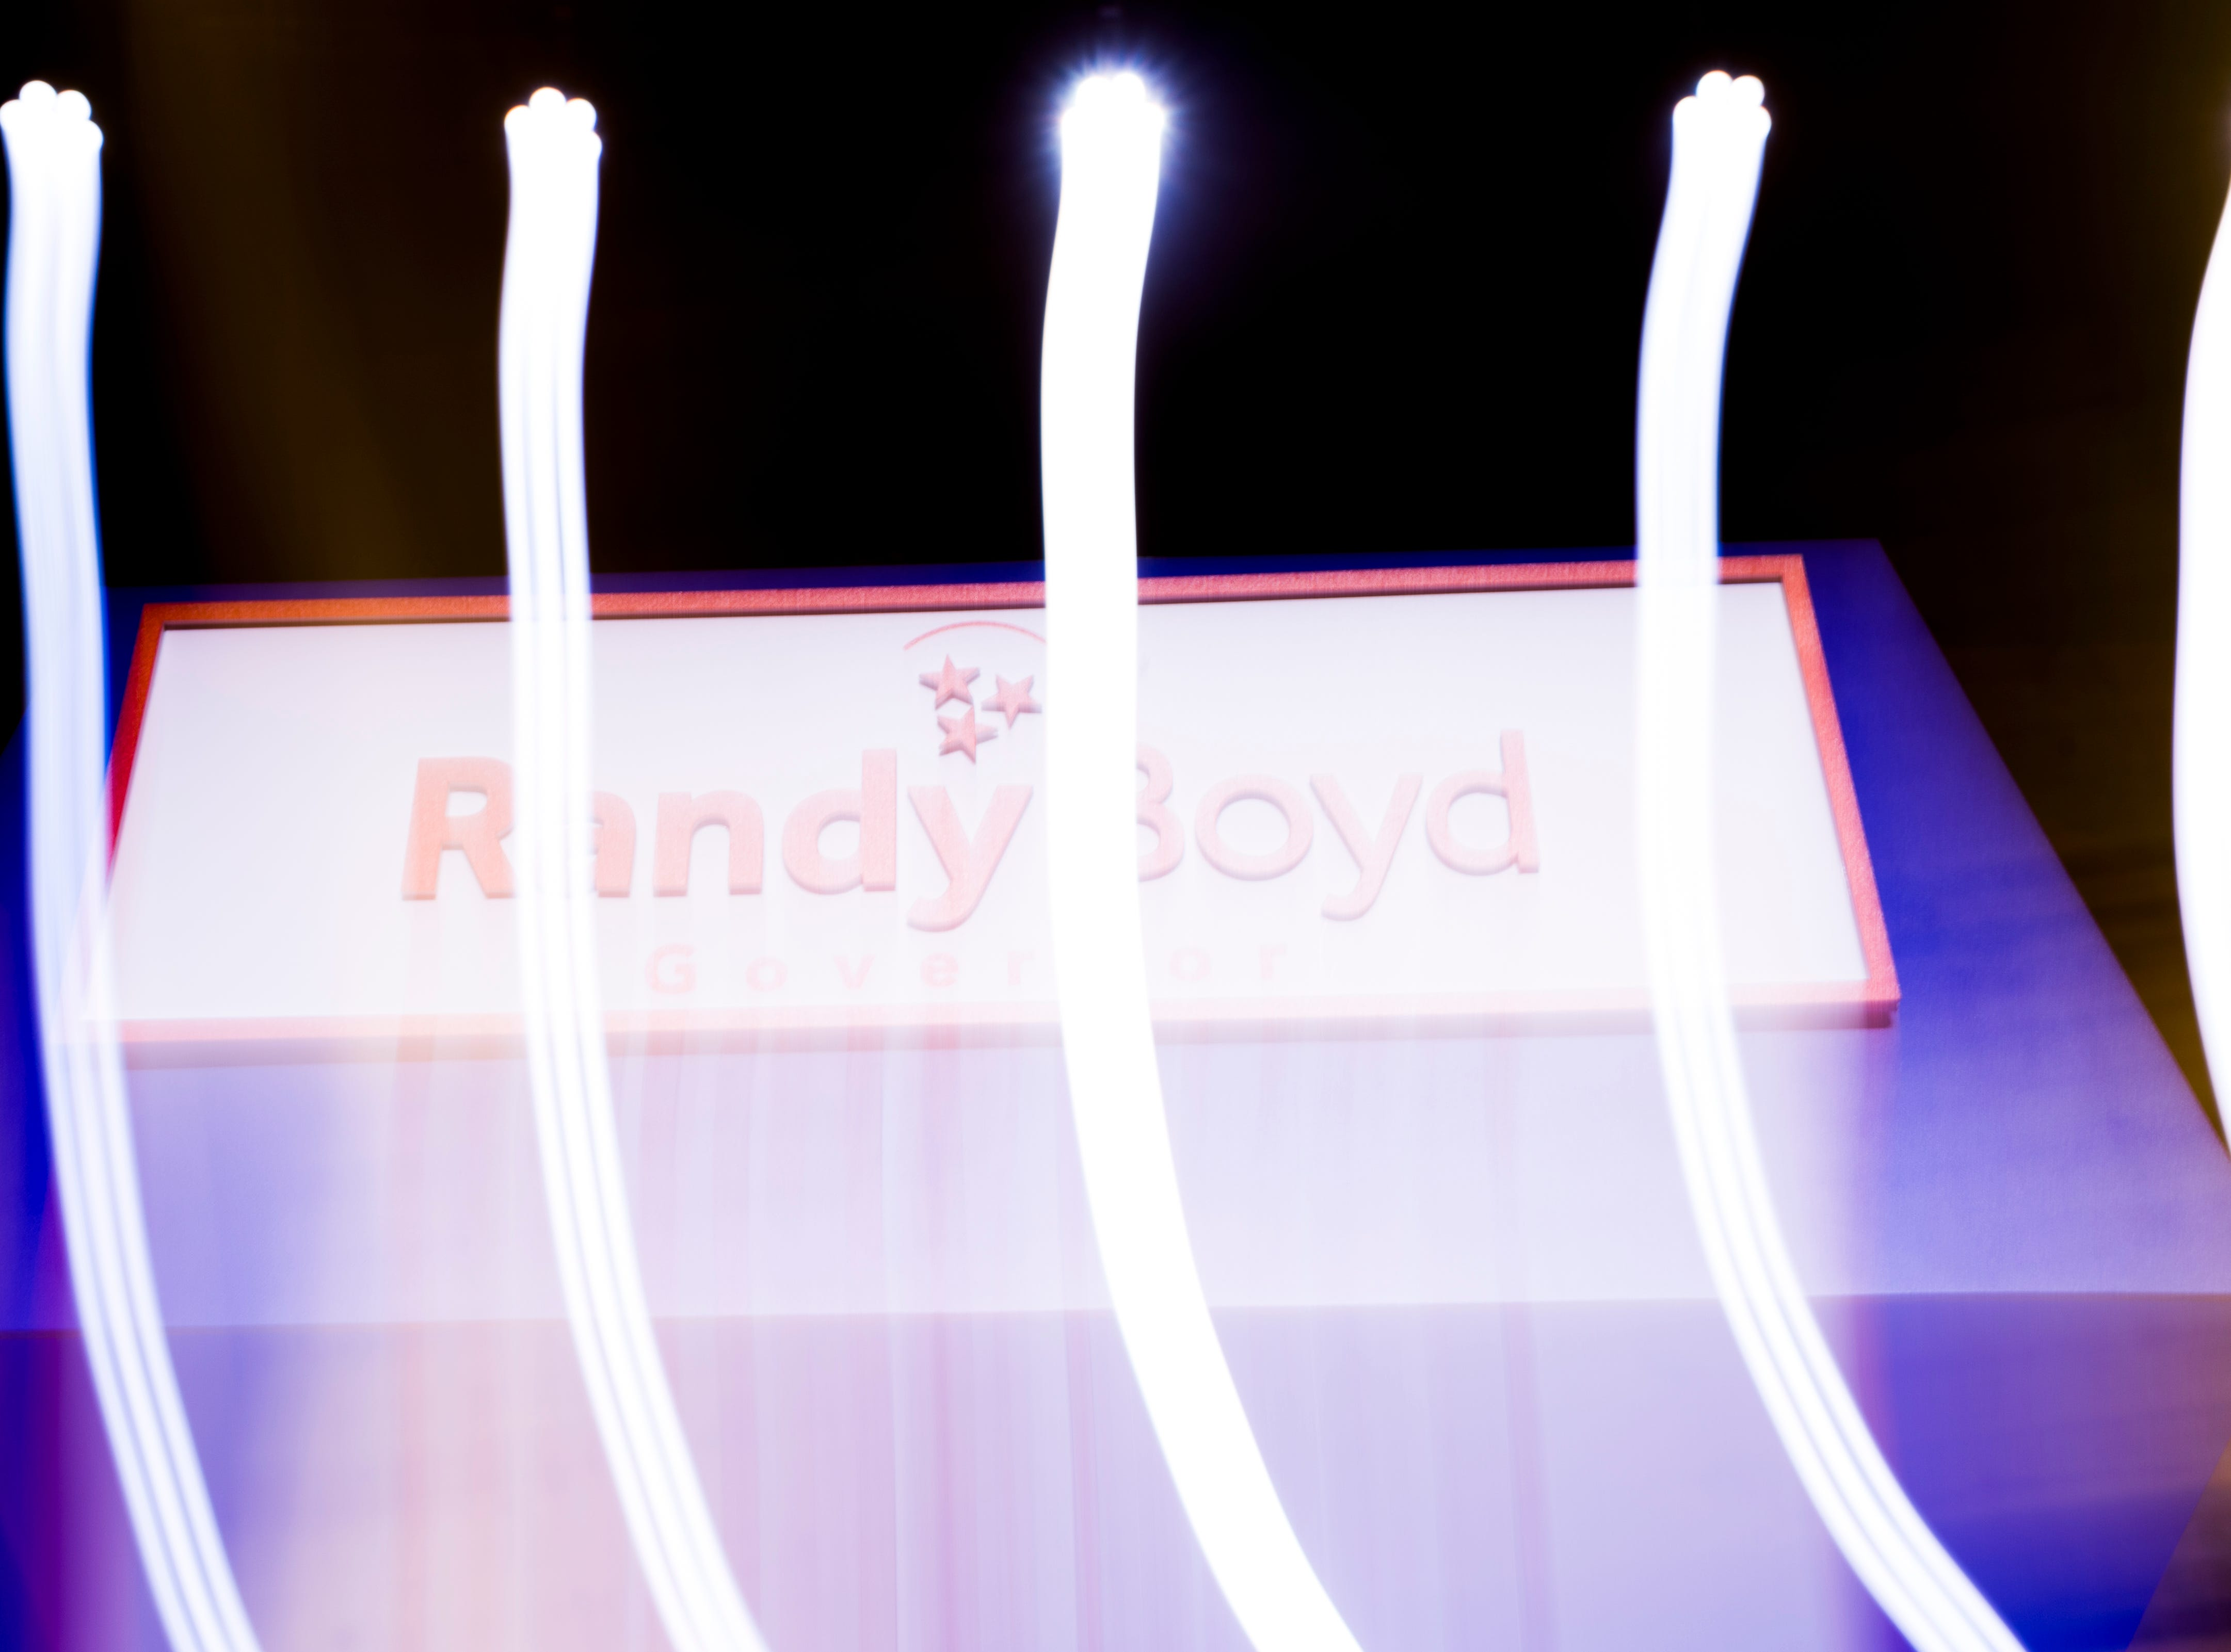 The Randy Boyd logo is seen in this long-exposure photograph at the Randy Boyd for Governor watch party at Jackson Terminal in Knoxville, Tennessee on Thursday, August 2, 2018.